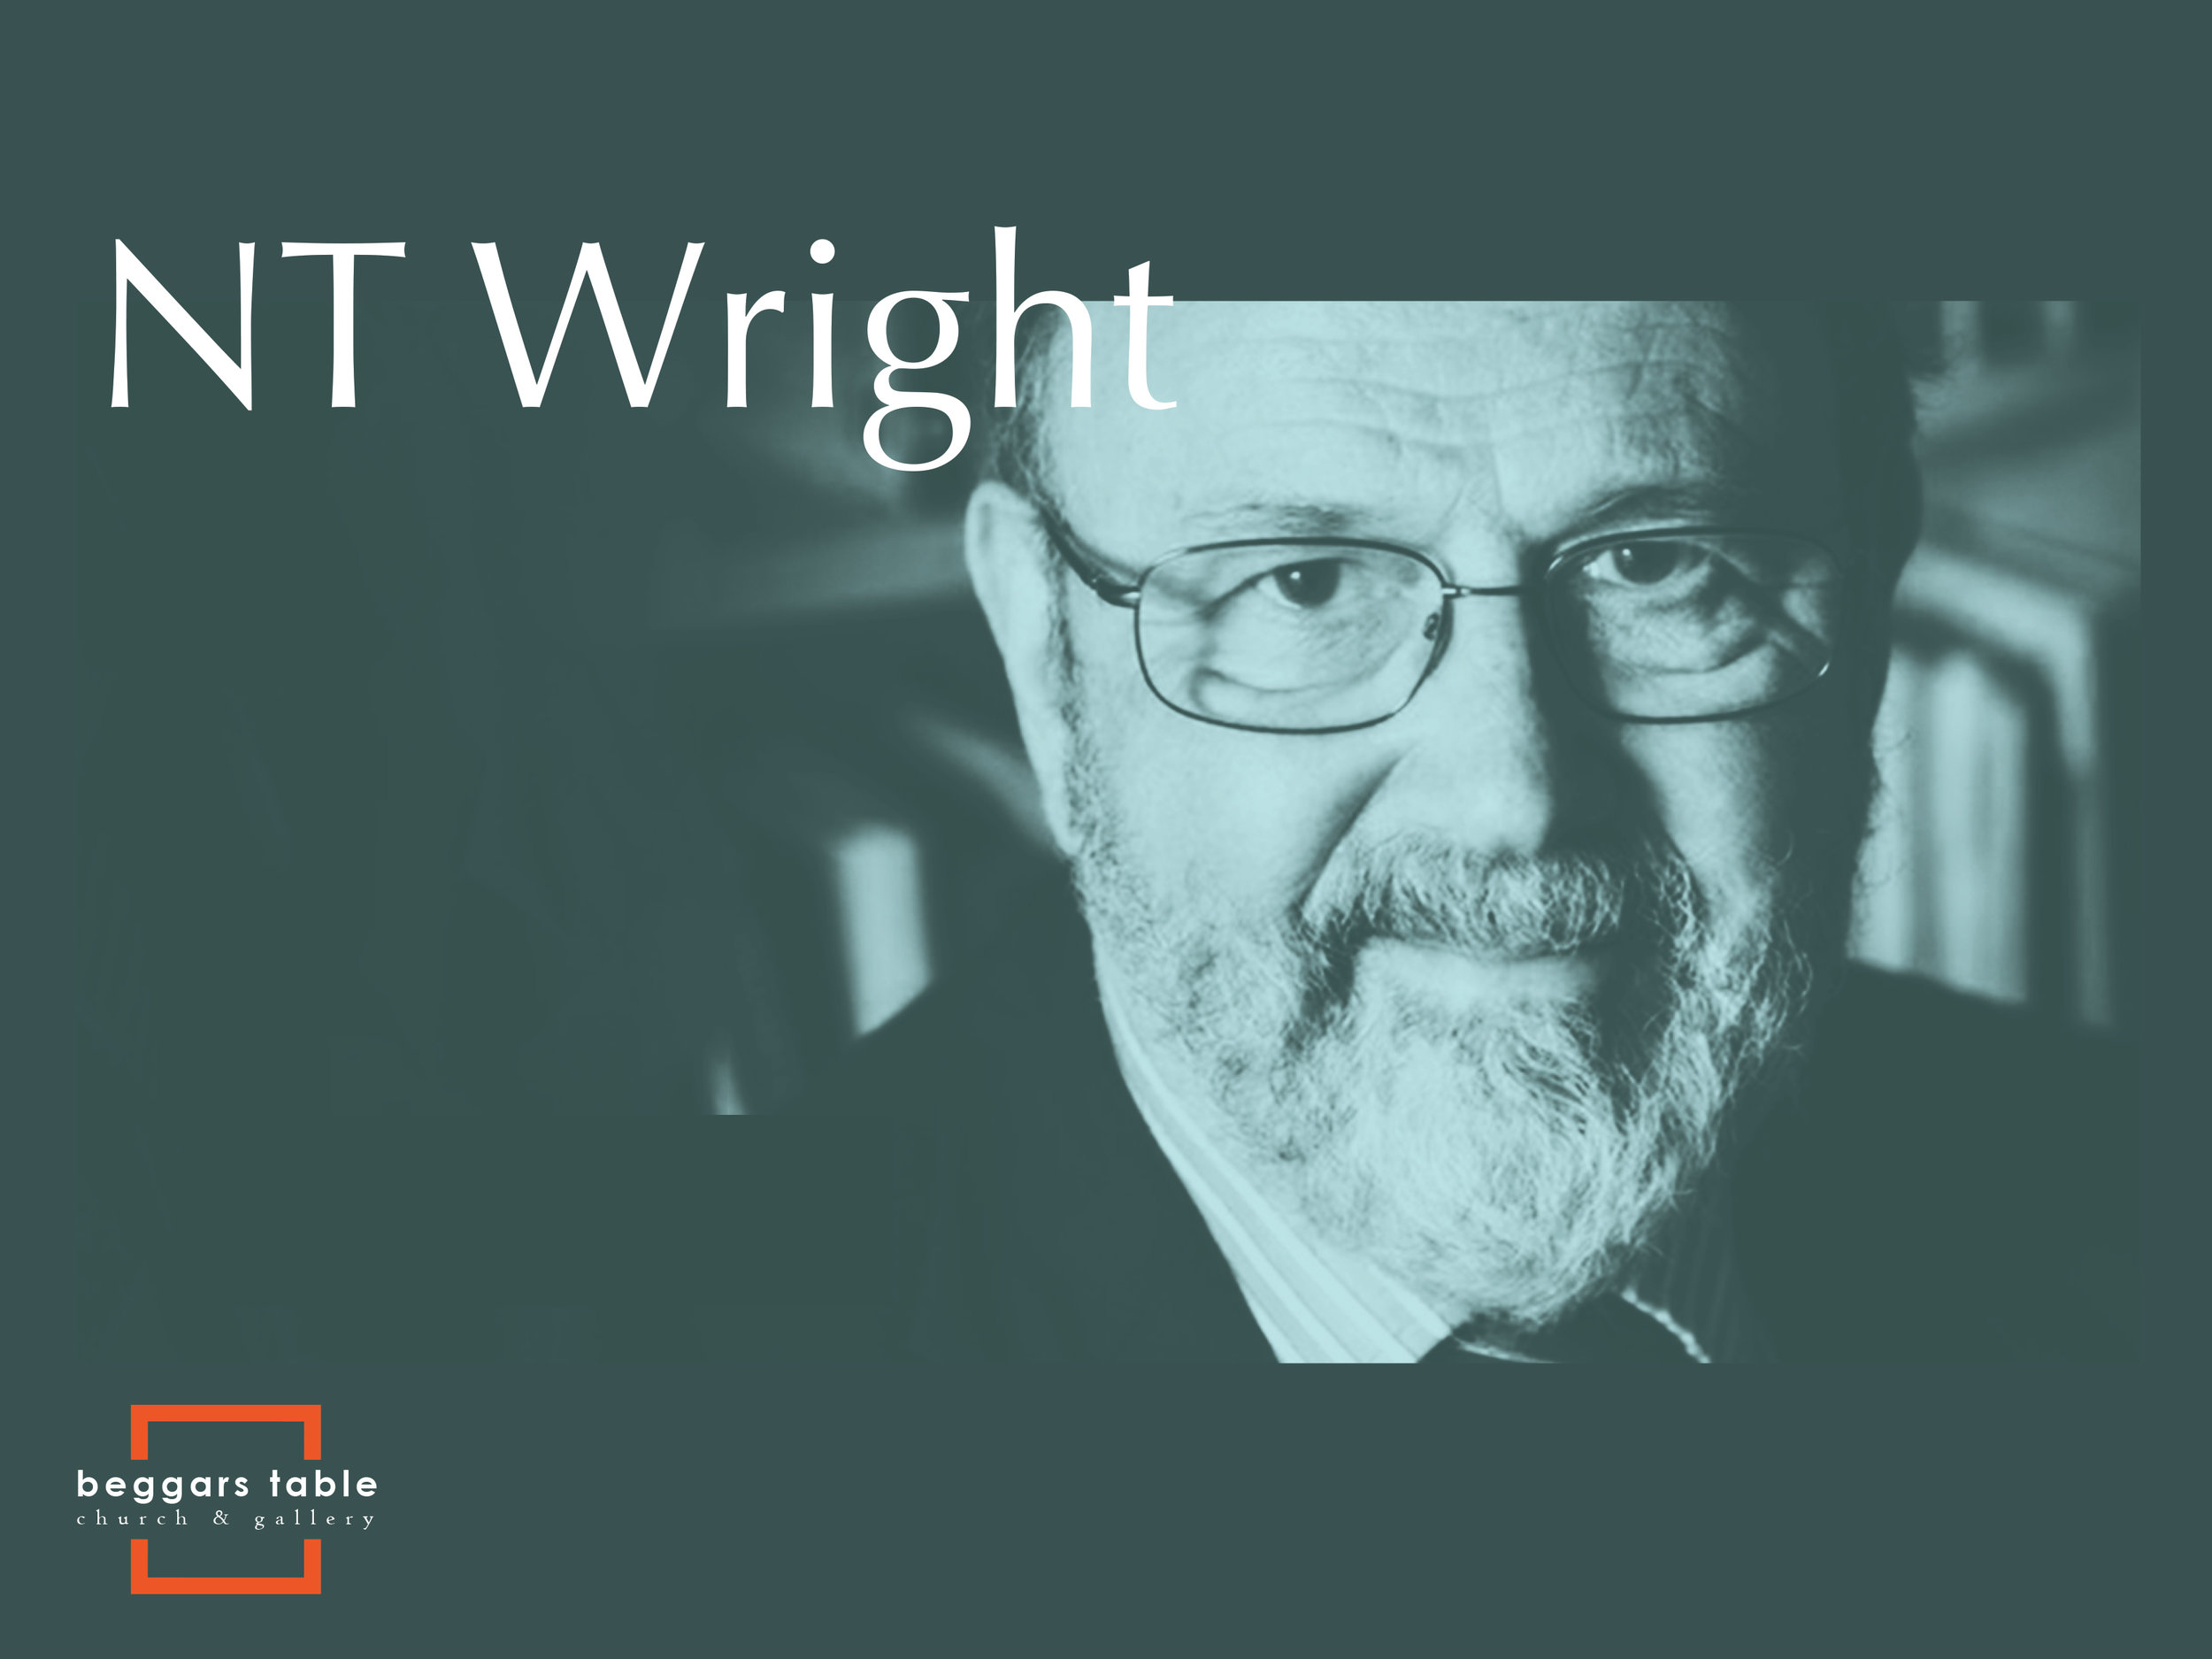 BT influence - NT Wright